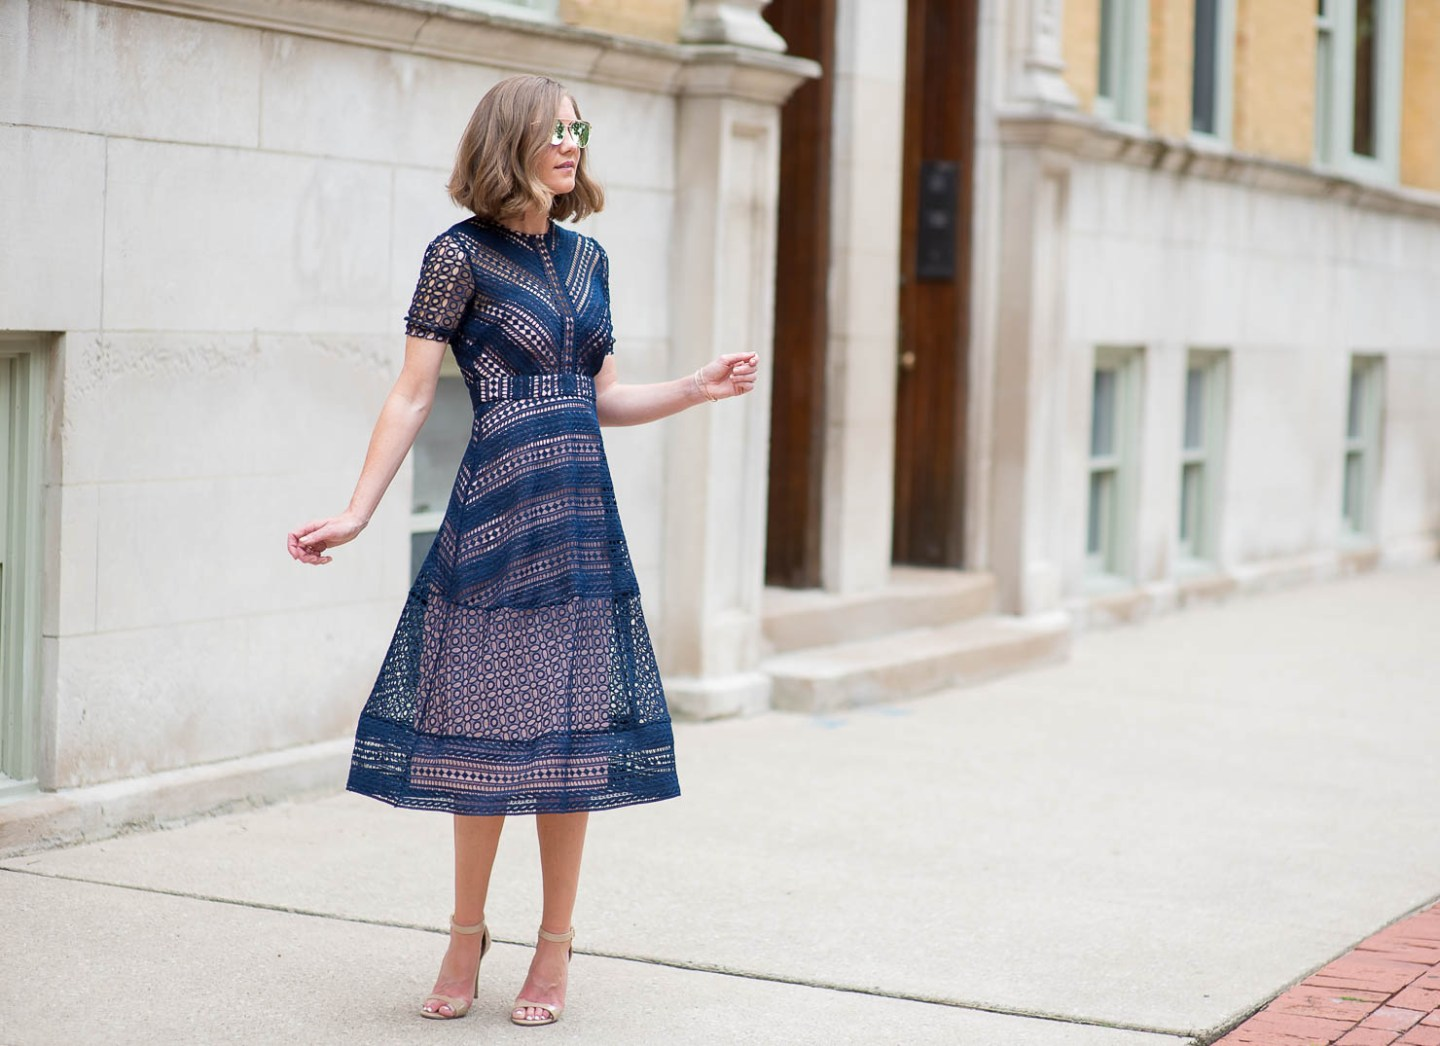 asos-premium-navy-lace-midi-dress-lace-and-leather-nyfw-new-york-fashion-week-what-to-wear-lace-for-fall-lace-statement-dress